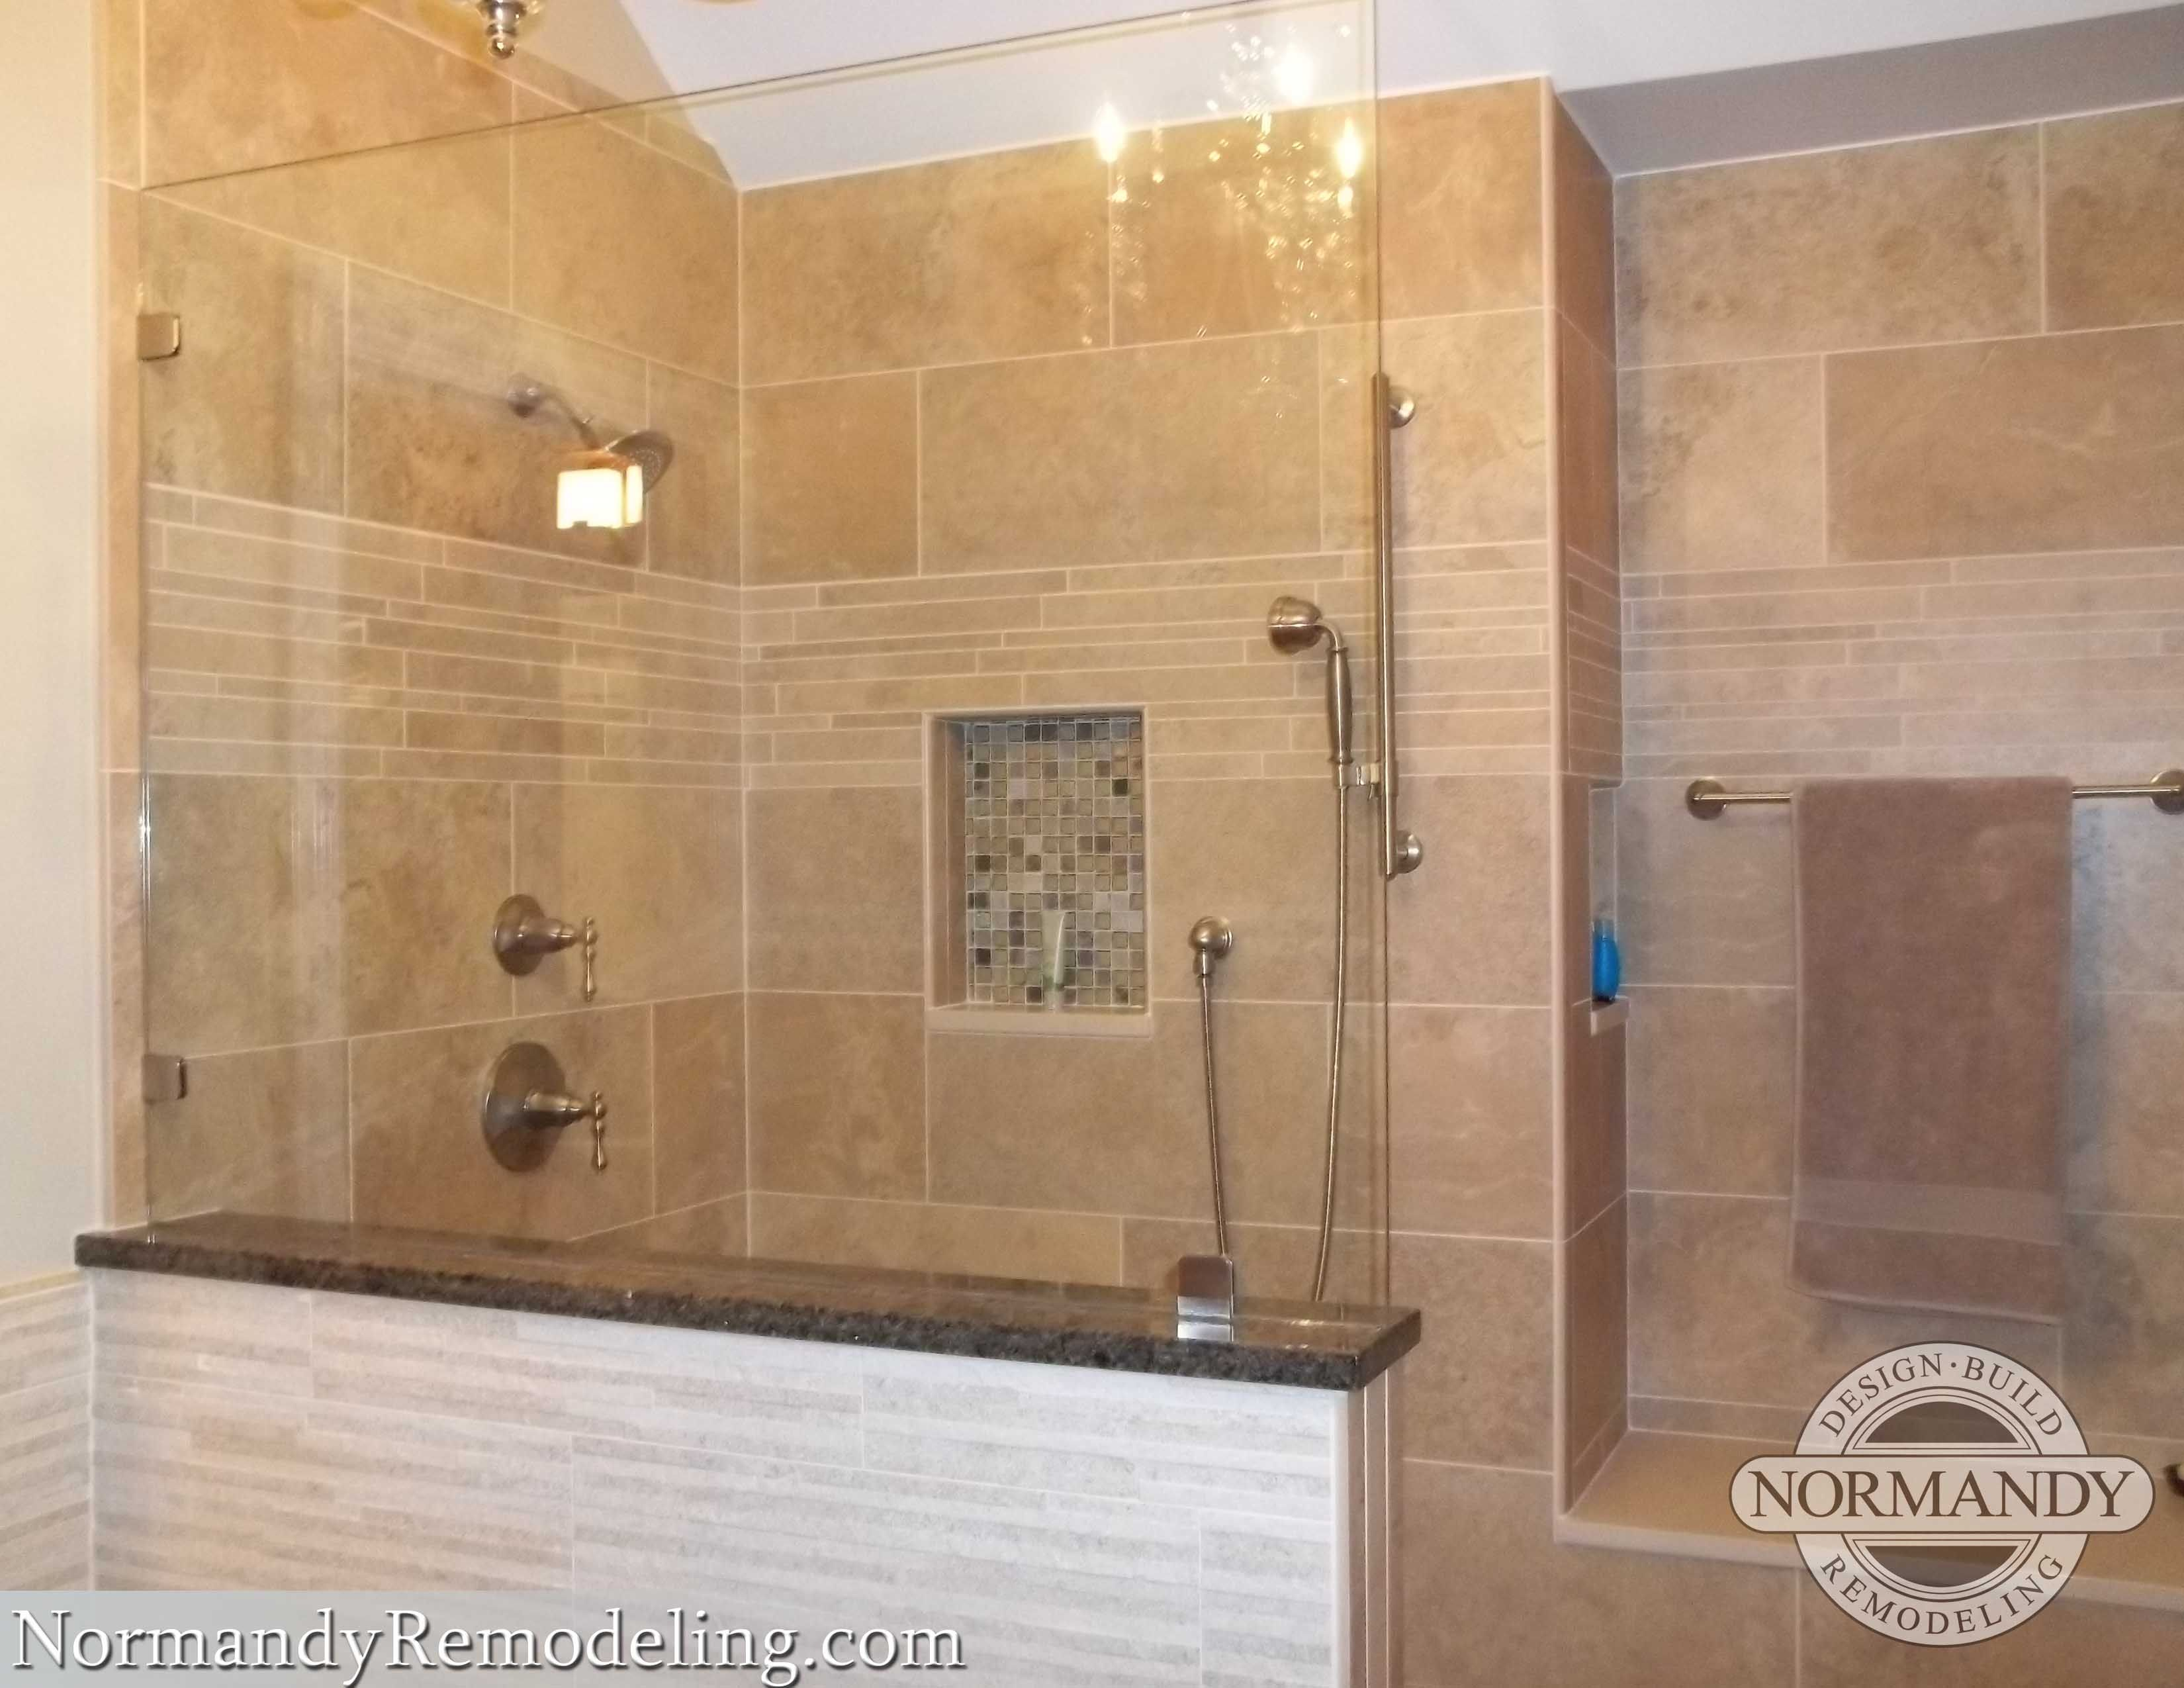 Large Walk In Showers Without Doors. Walk in shower designs without doors pictures created by Normandy Designer  Laura Barber TILES bathroom no Google Search Bathroom ideas